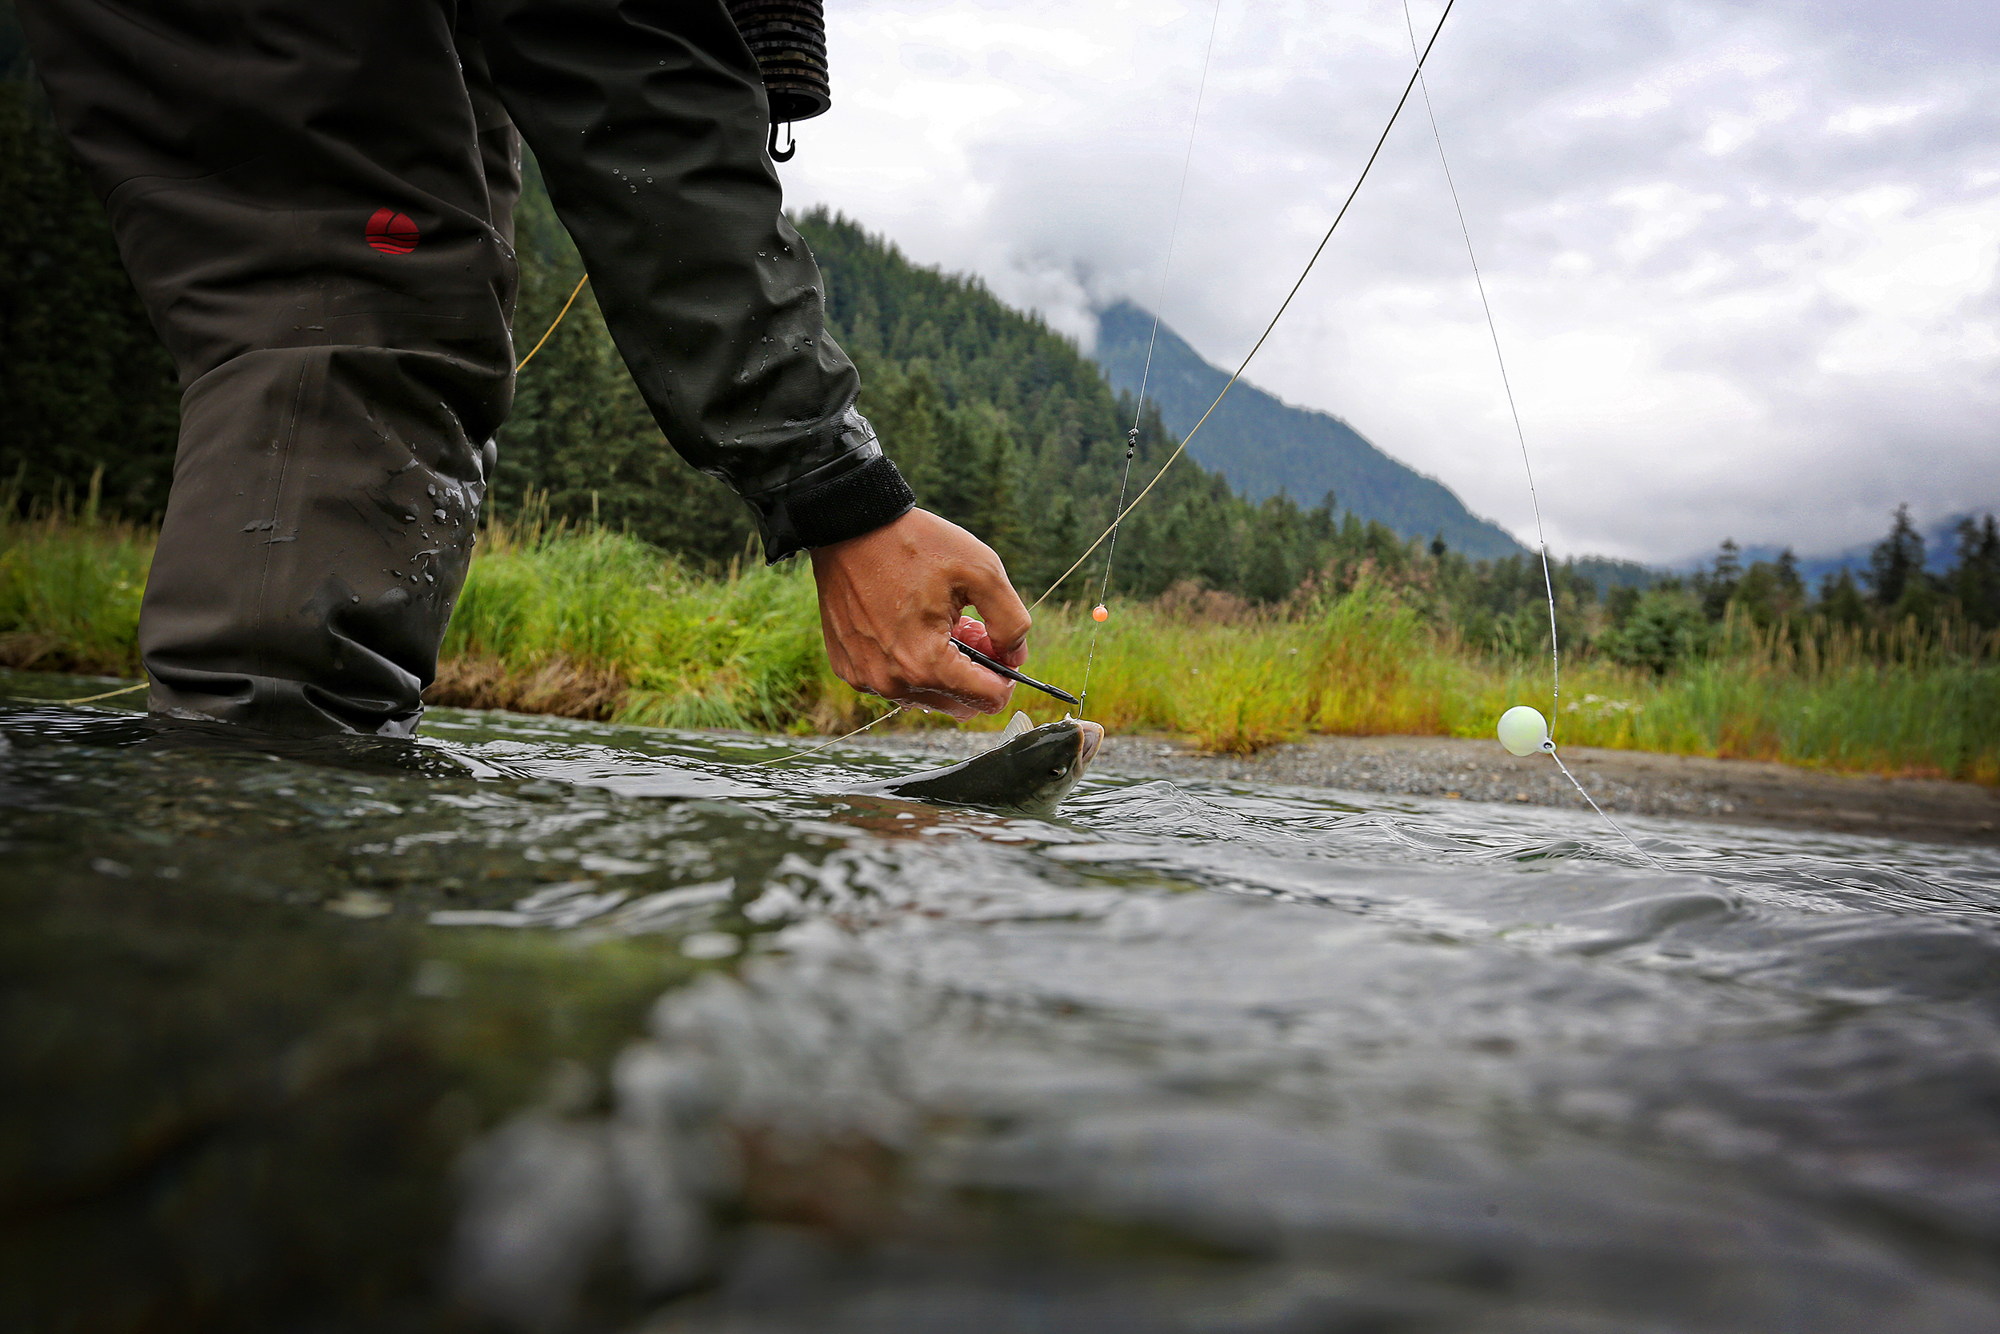 "(1/2) The vast majority of the fishing in creeks like these is done using bead rigs -- plastic beads designed to imitate salmon eggs -- pegged 1-2 inches above a bare hook. Frowned upon by some, ""beading"" is more effective and intricate than fishing with yarn-based egg flies and significantly reduces fish mortality due to a drastic decrease in the number of deeply swallowed hooks (photo: Earl Harper)."